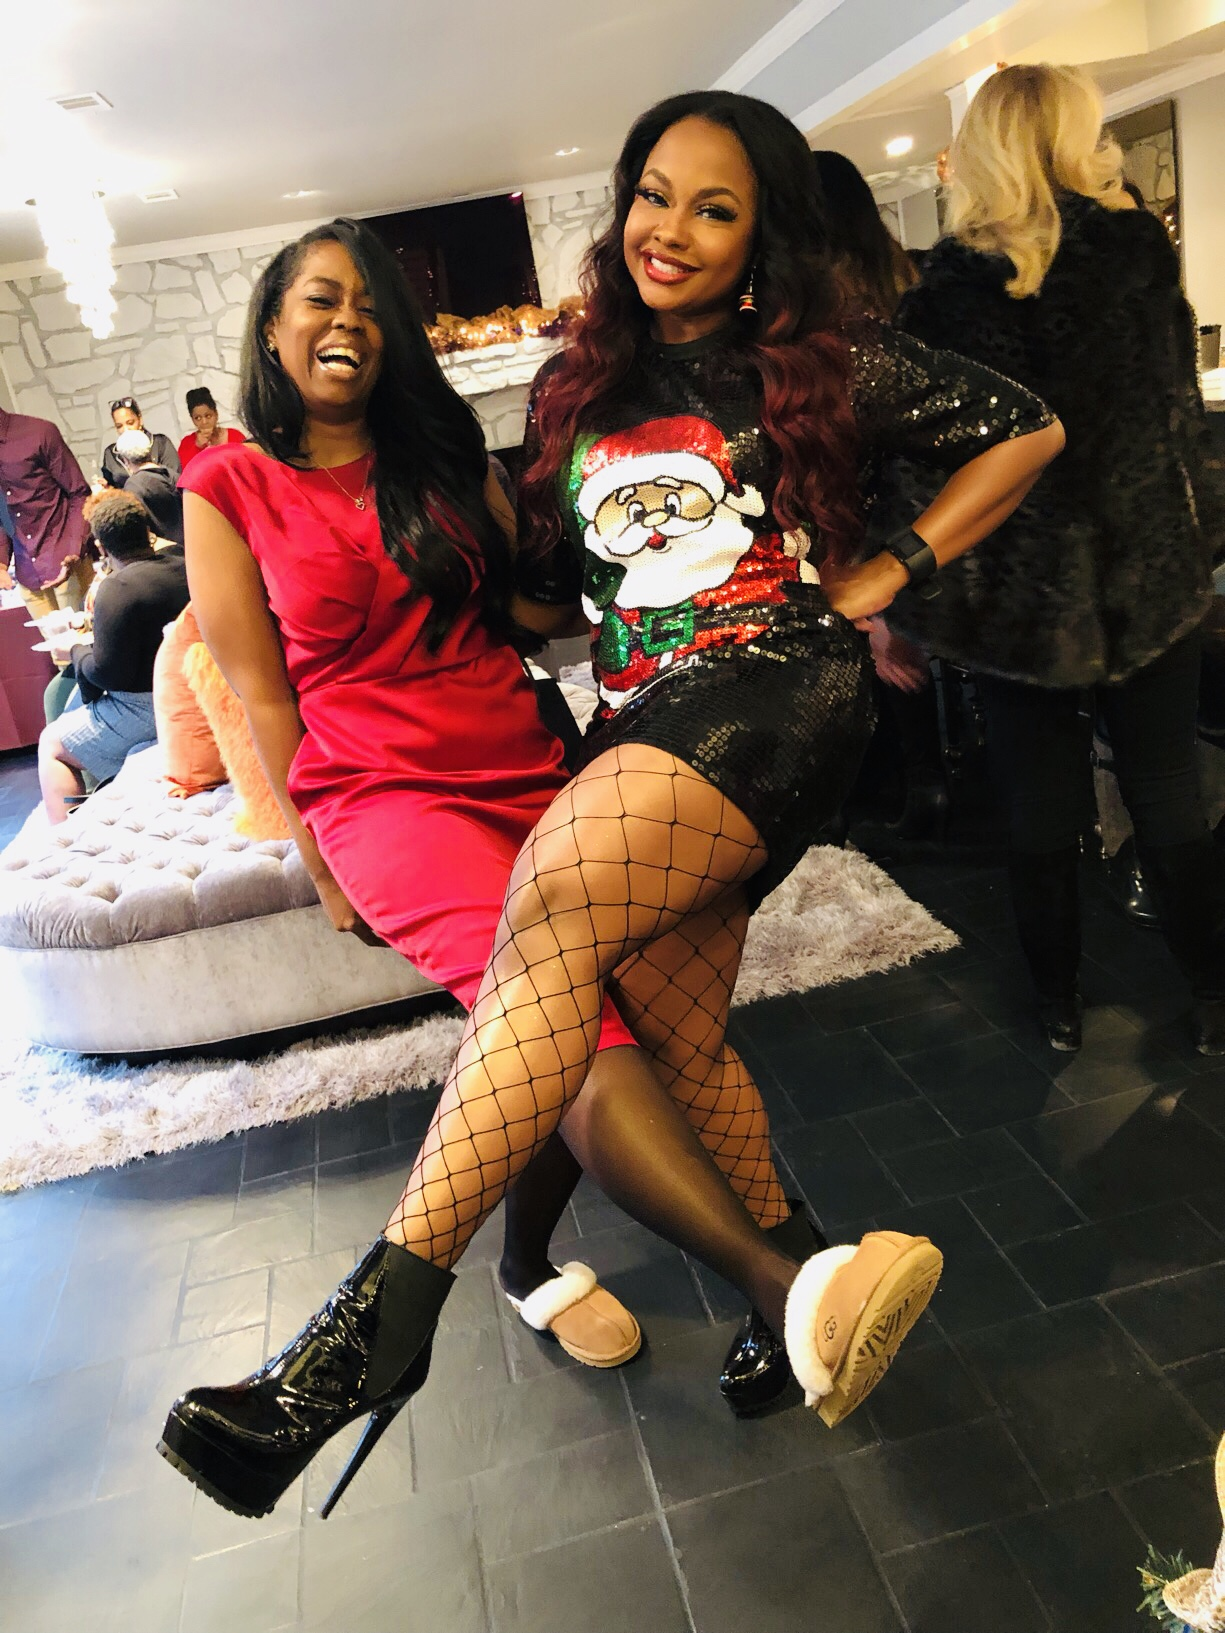 Phaedra Park's Holiday Girlfriends Gathering